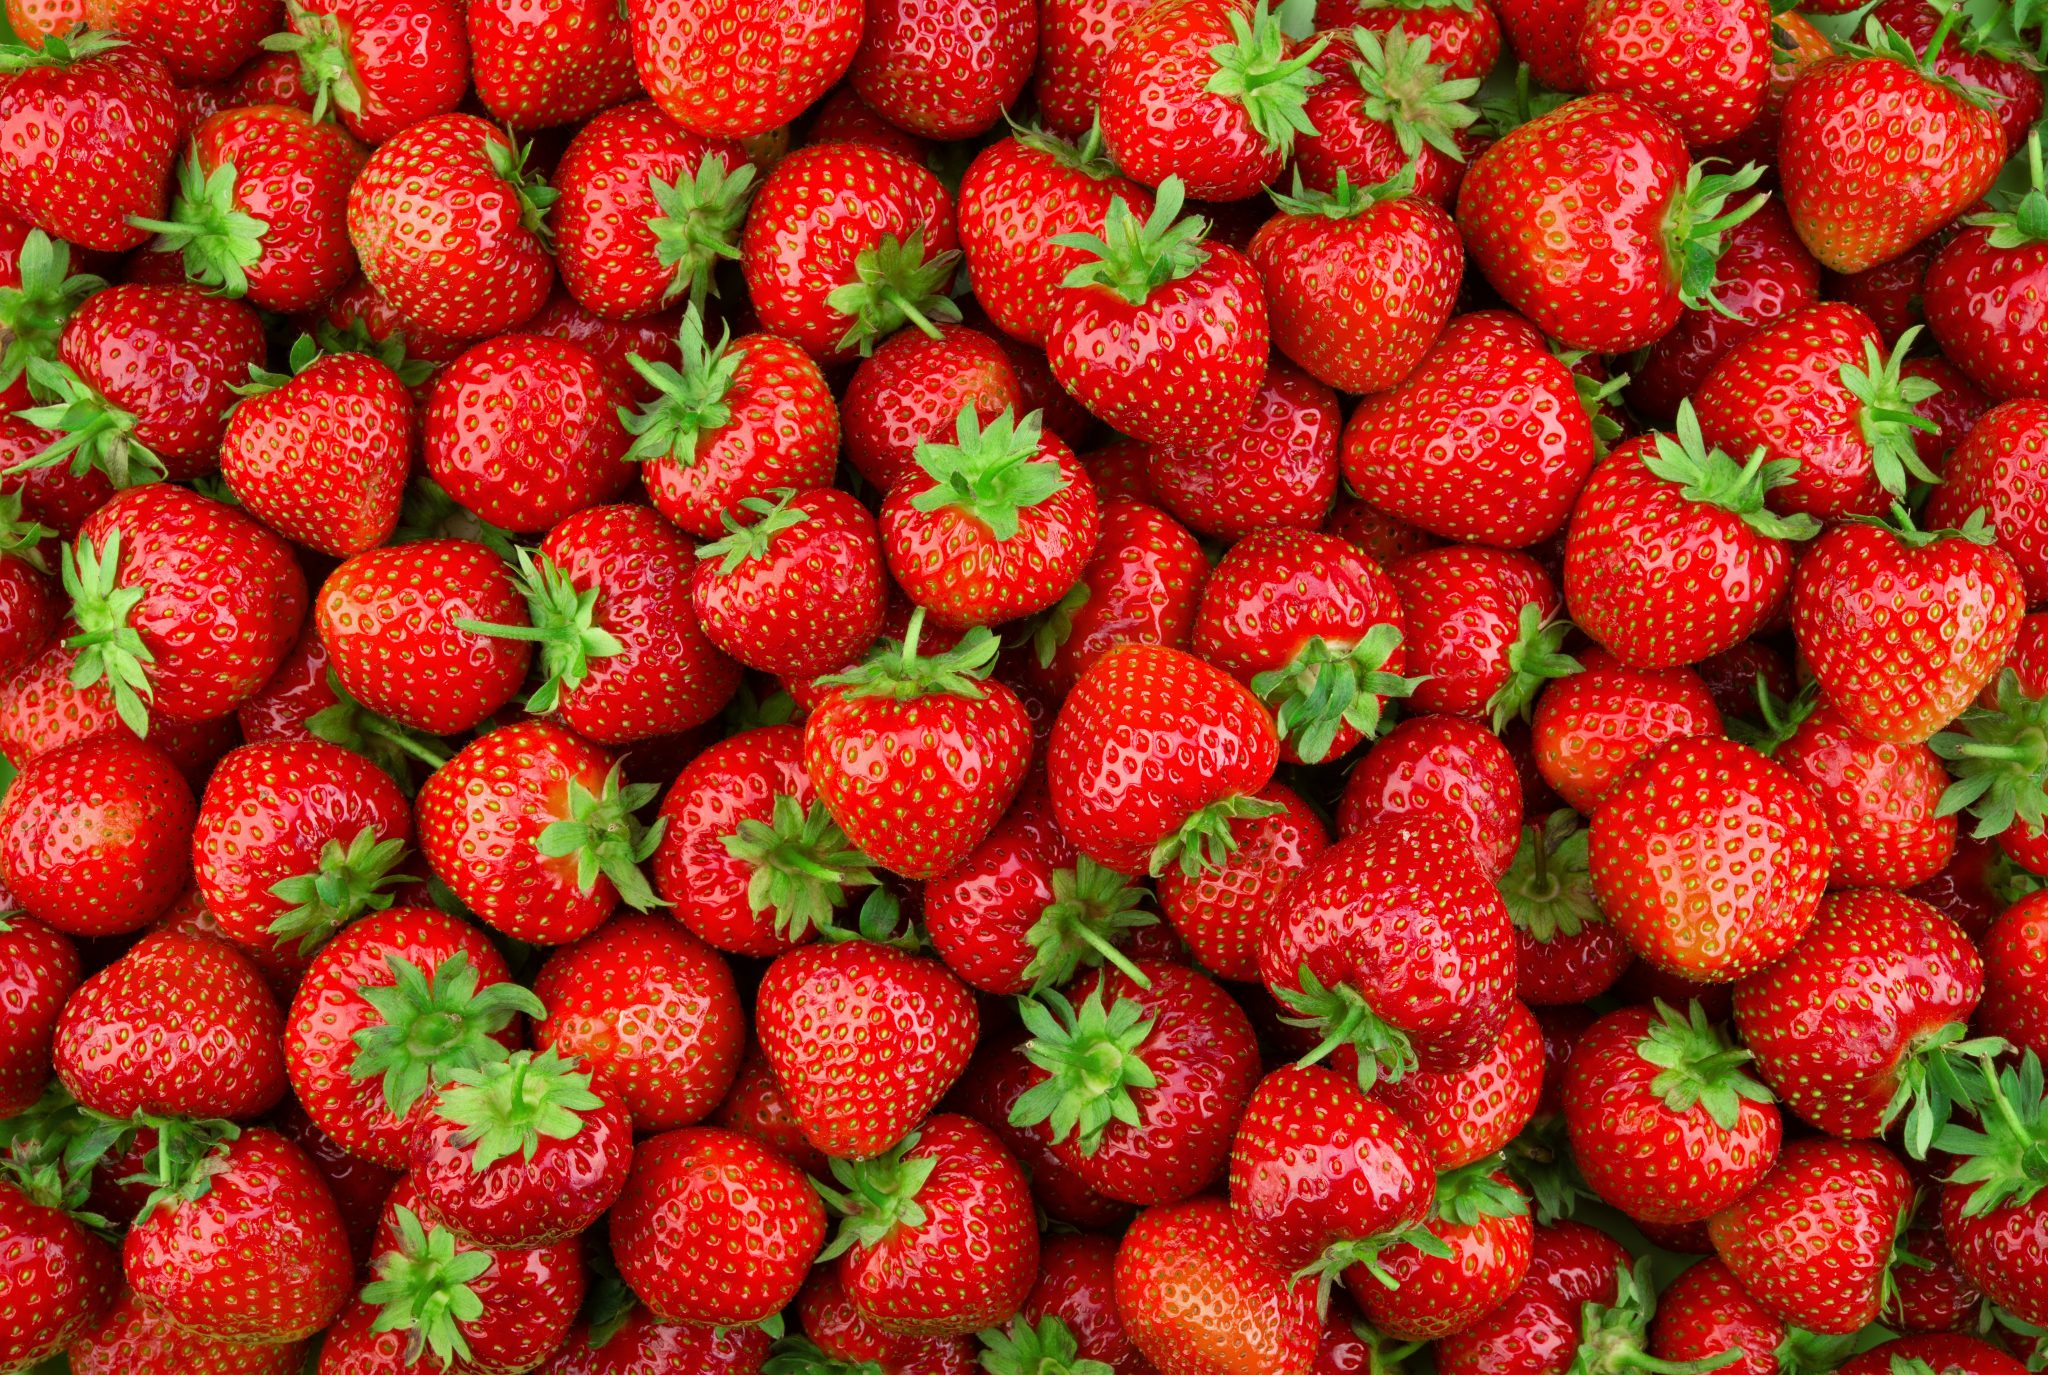 How Long Do Strawberries Last? Can They Go Bad?